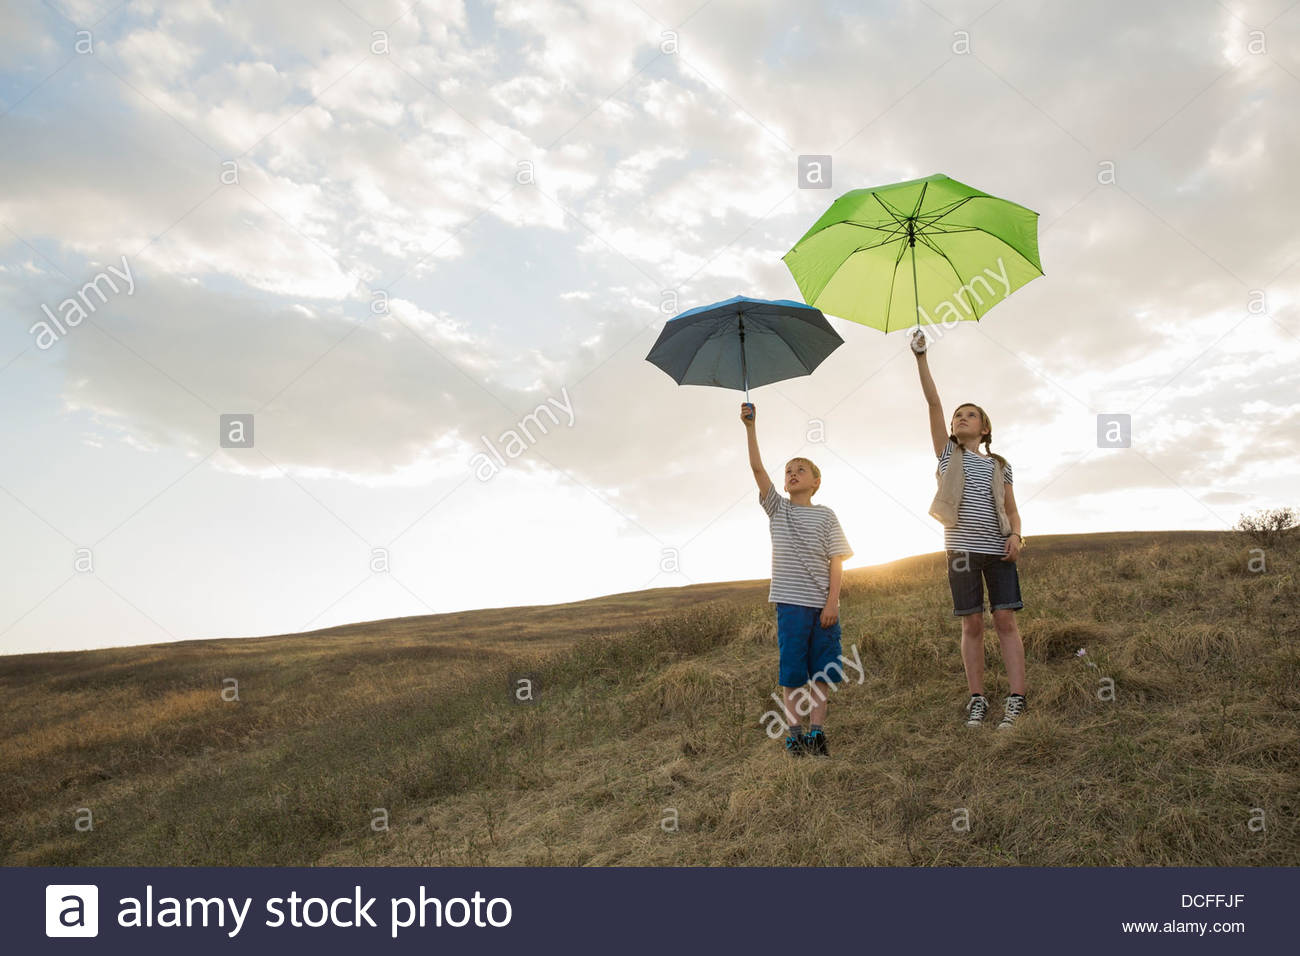 Kids holding umbrellas up to the sky - Stock Image